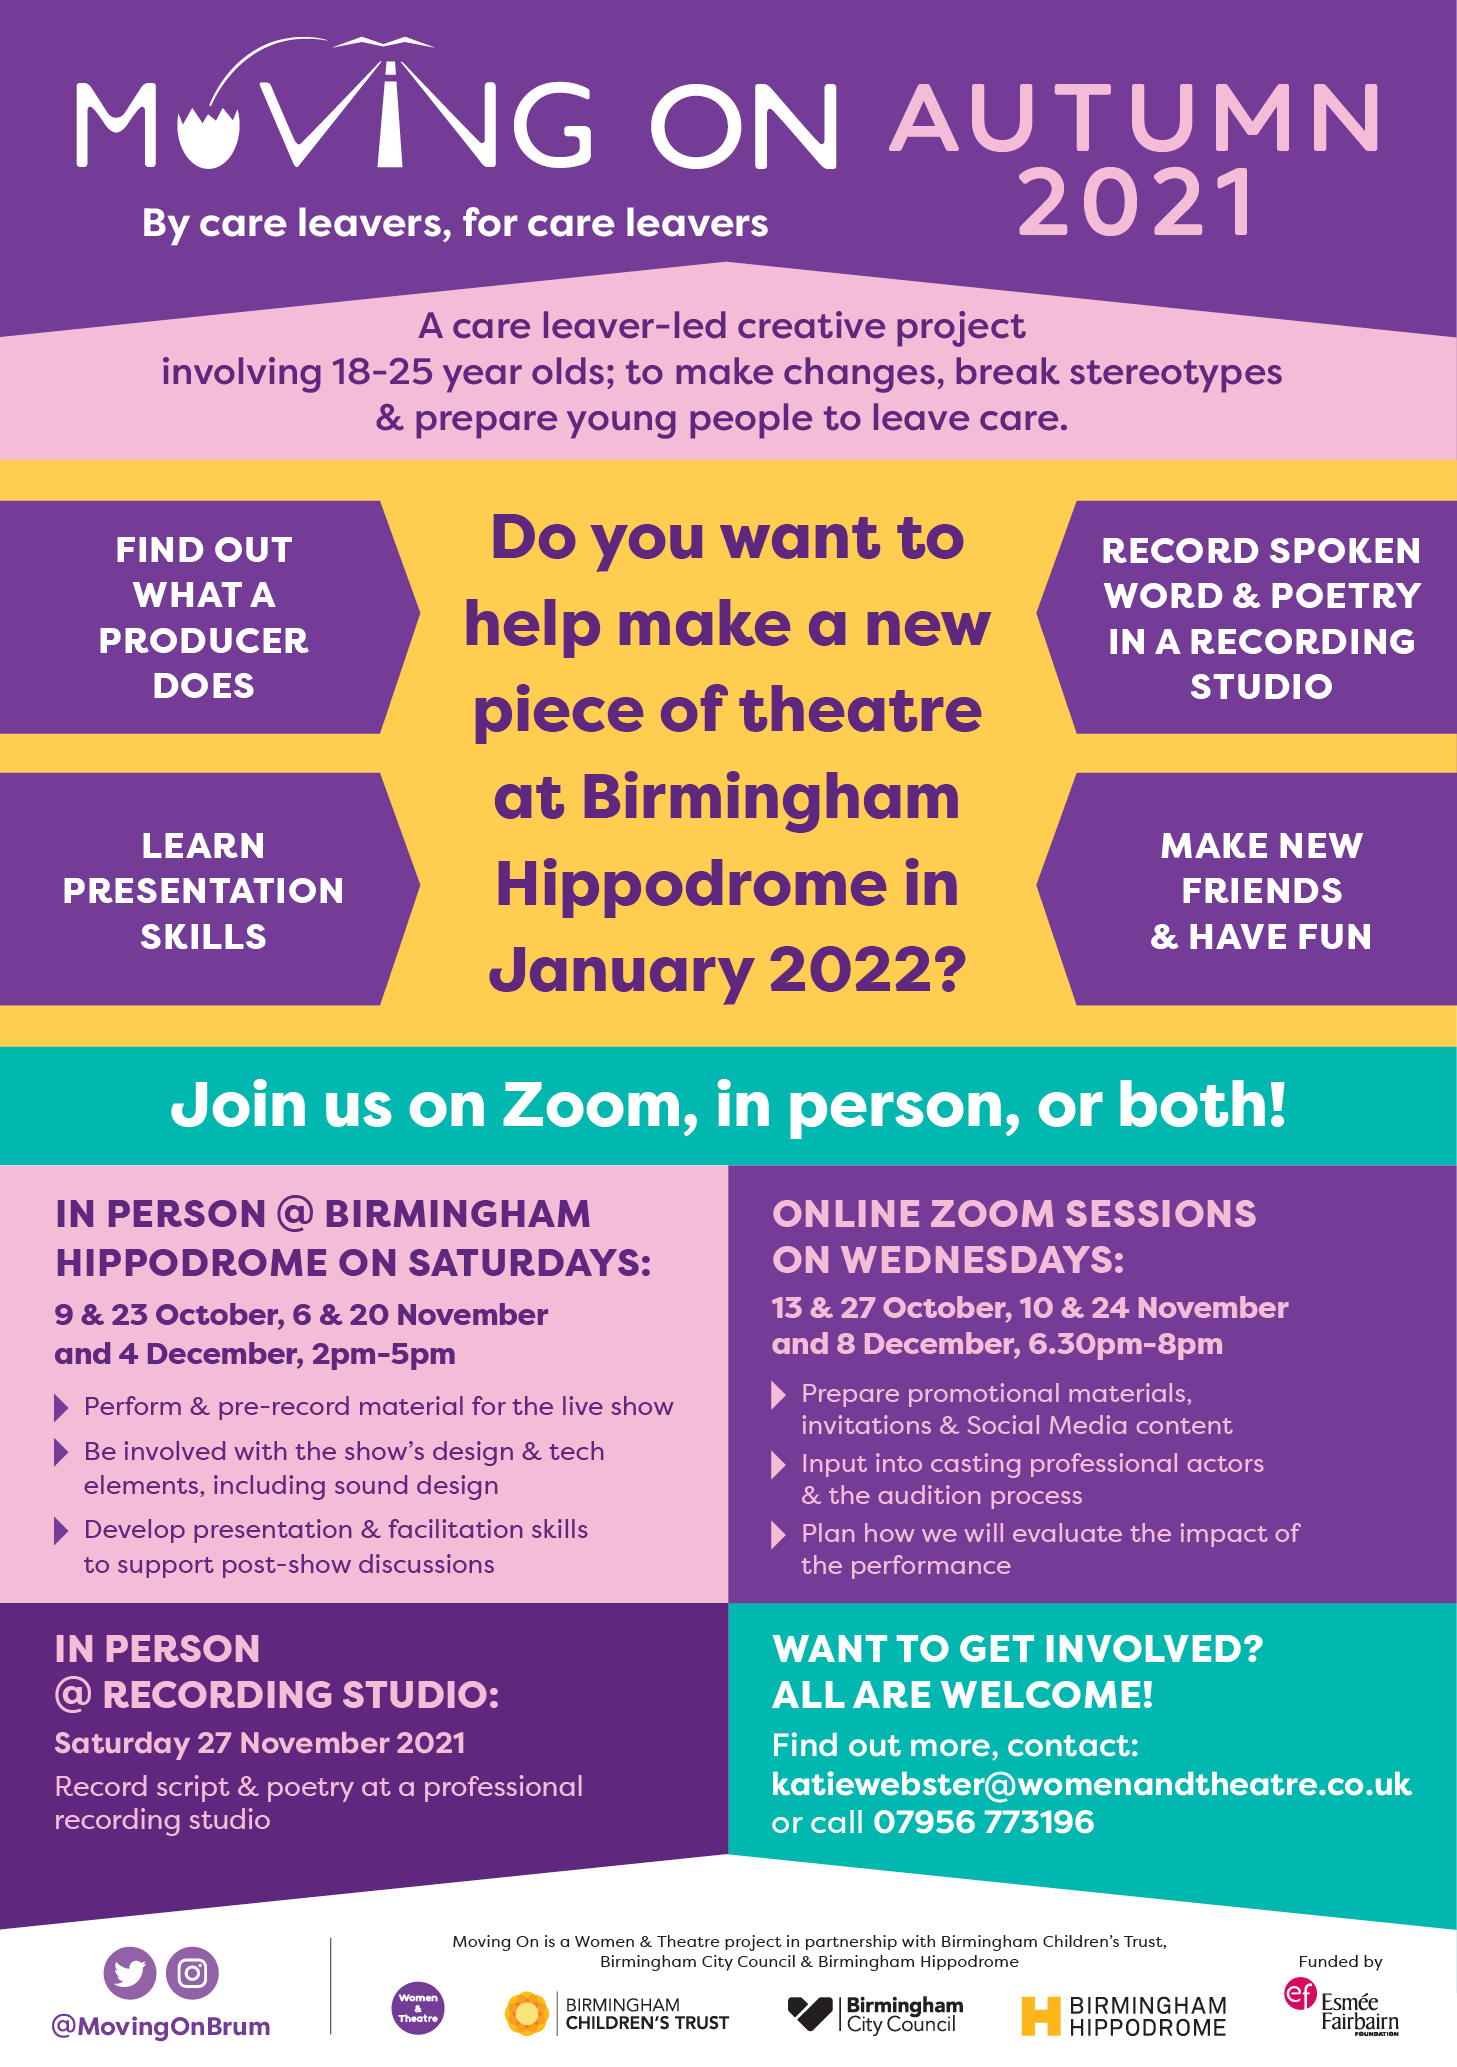 Moving On Autumn 2021 By Care Leavers, for Care Leavers. Do you want to help make a new piece of theatre at Birmingham Hippodrome in January 2022? Join us on Zoom, in person, or both!